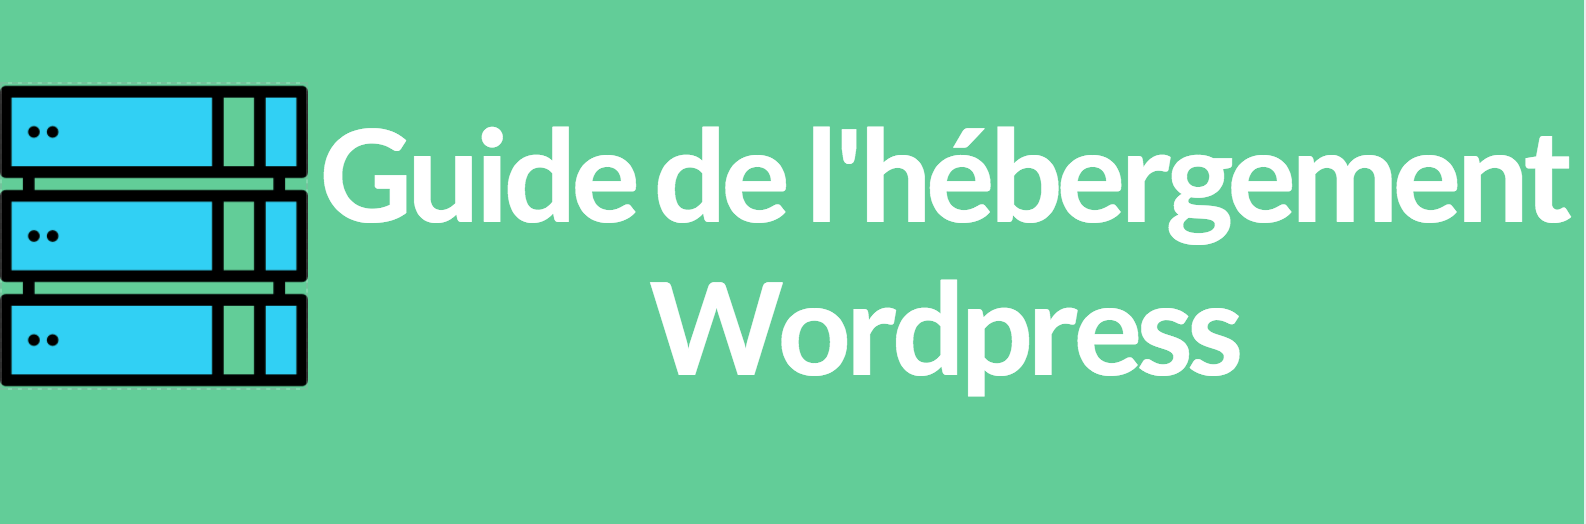 guide-hebergement-wordpress